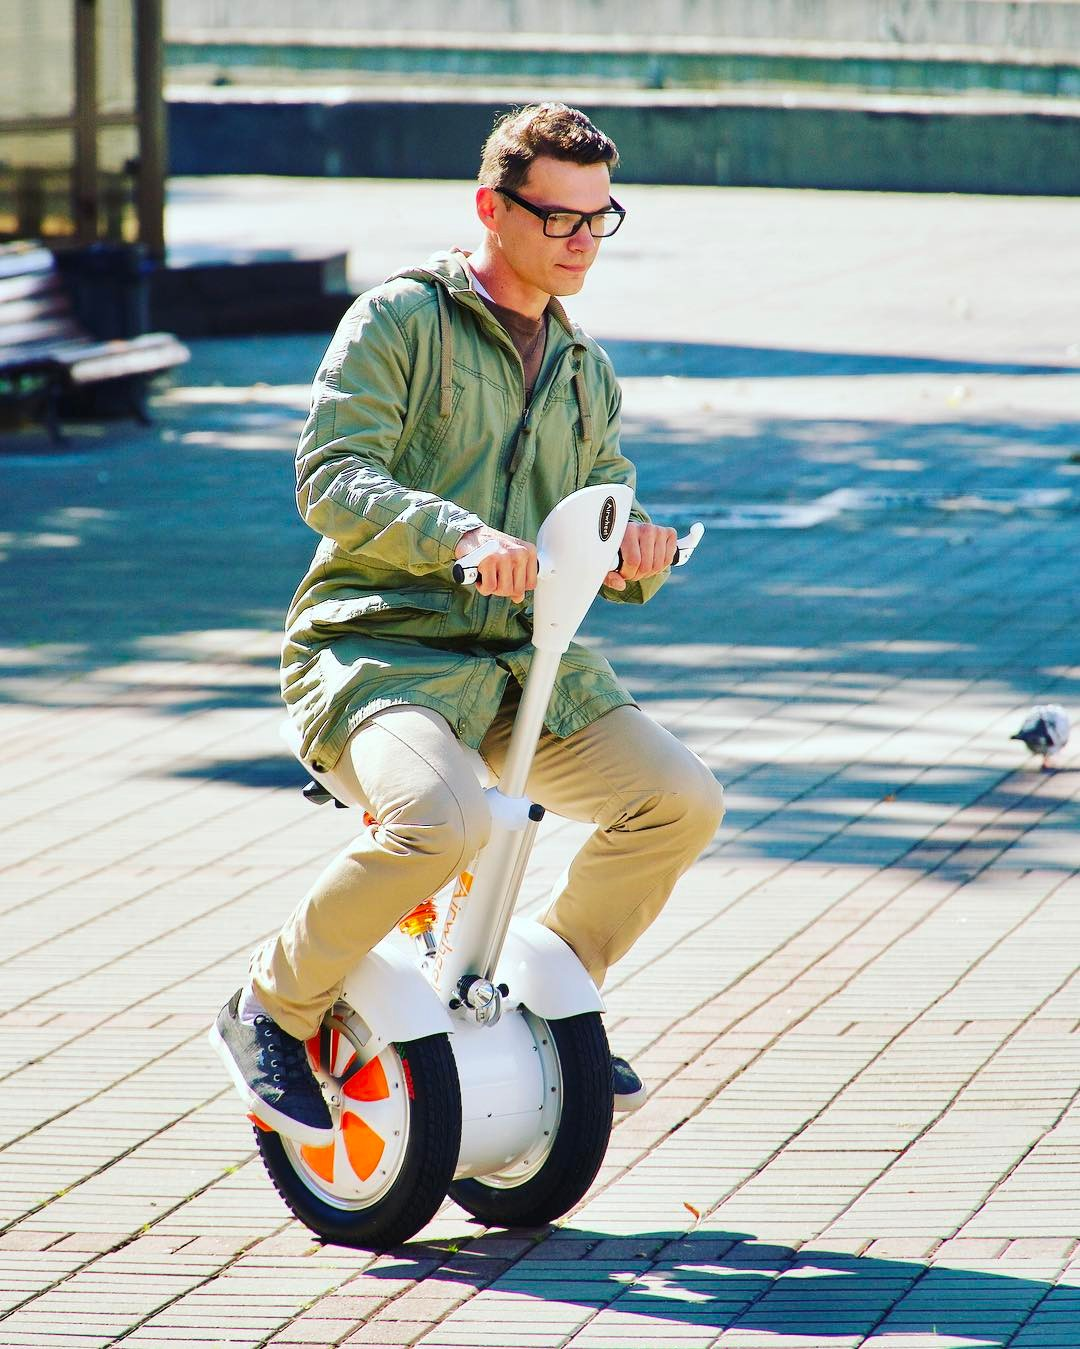 Airwheel A3 2-wheeled electric scooter